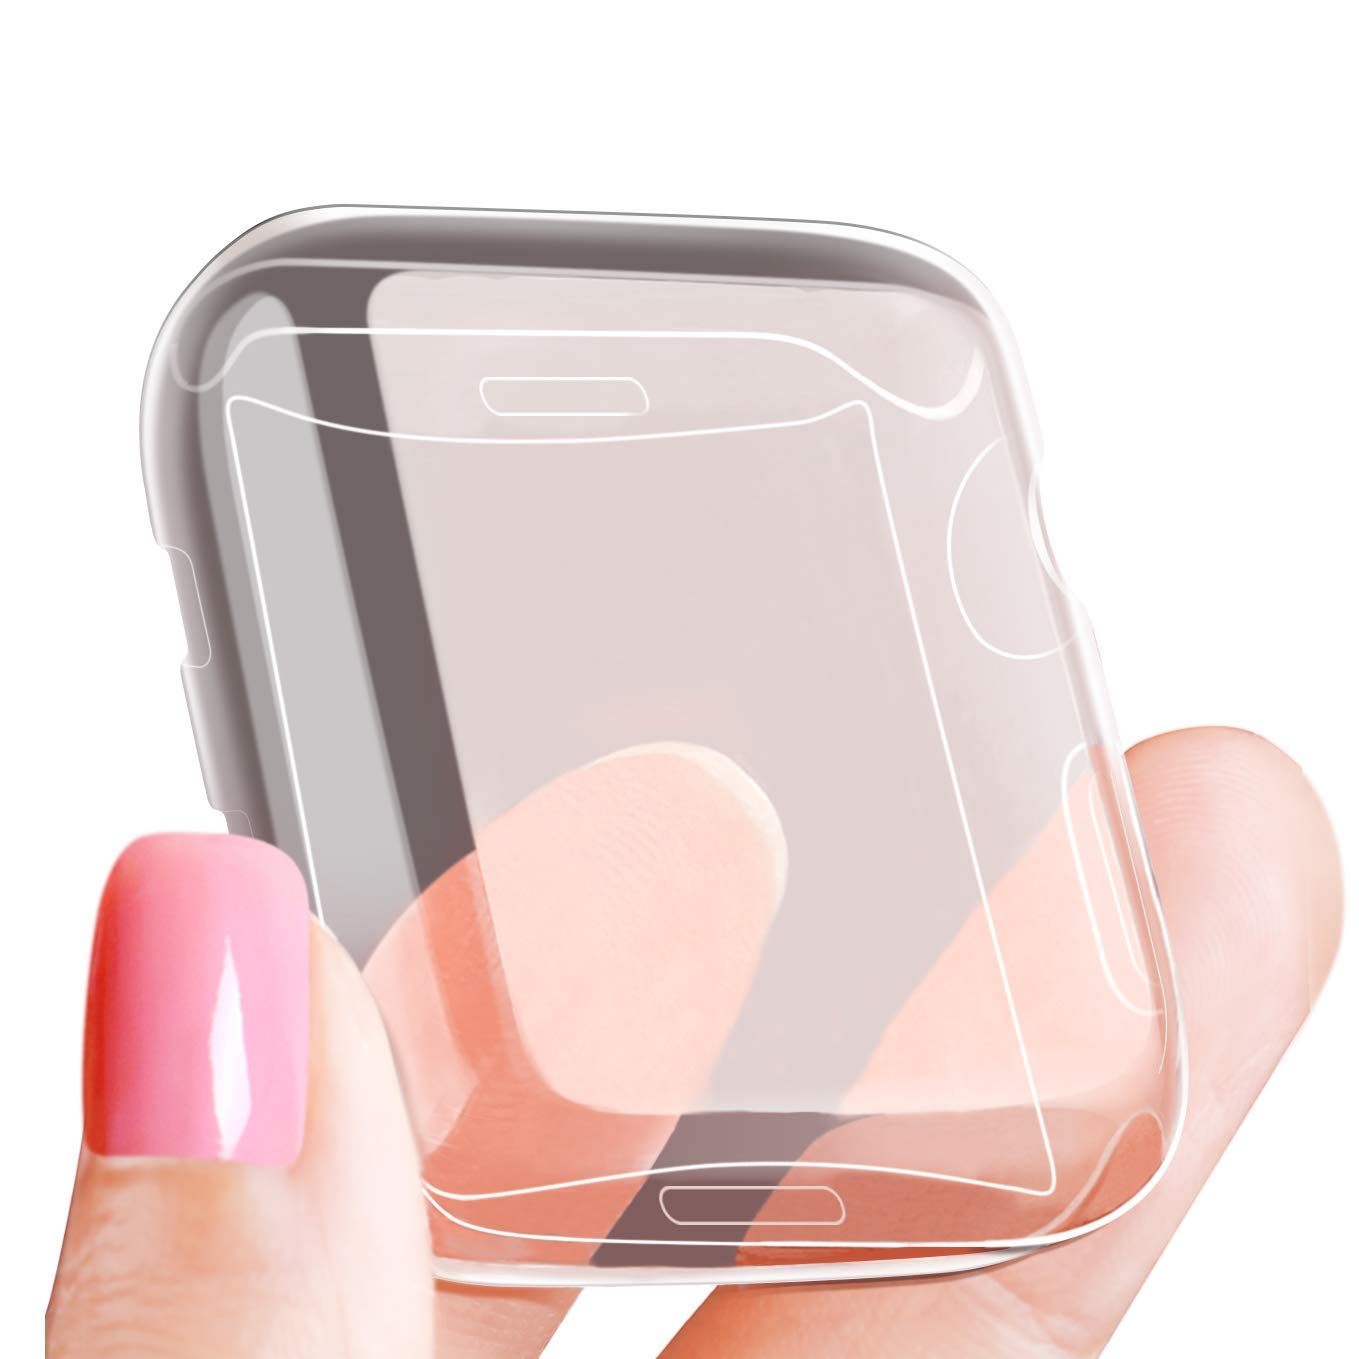 LELONG Compatible with Apple Watch Case 38mm 42mm 40mm 44mm, Soft TPU All-Around Clear Screen Protector Cover for iWatch Series 4,Series 3, Series 2 by LELONG (Image #8)